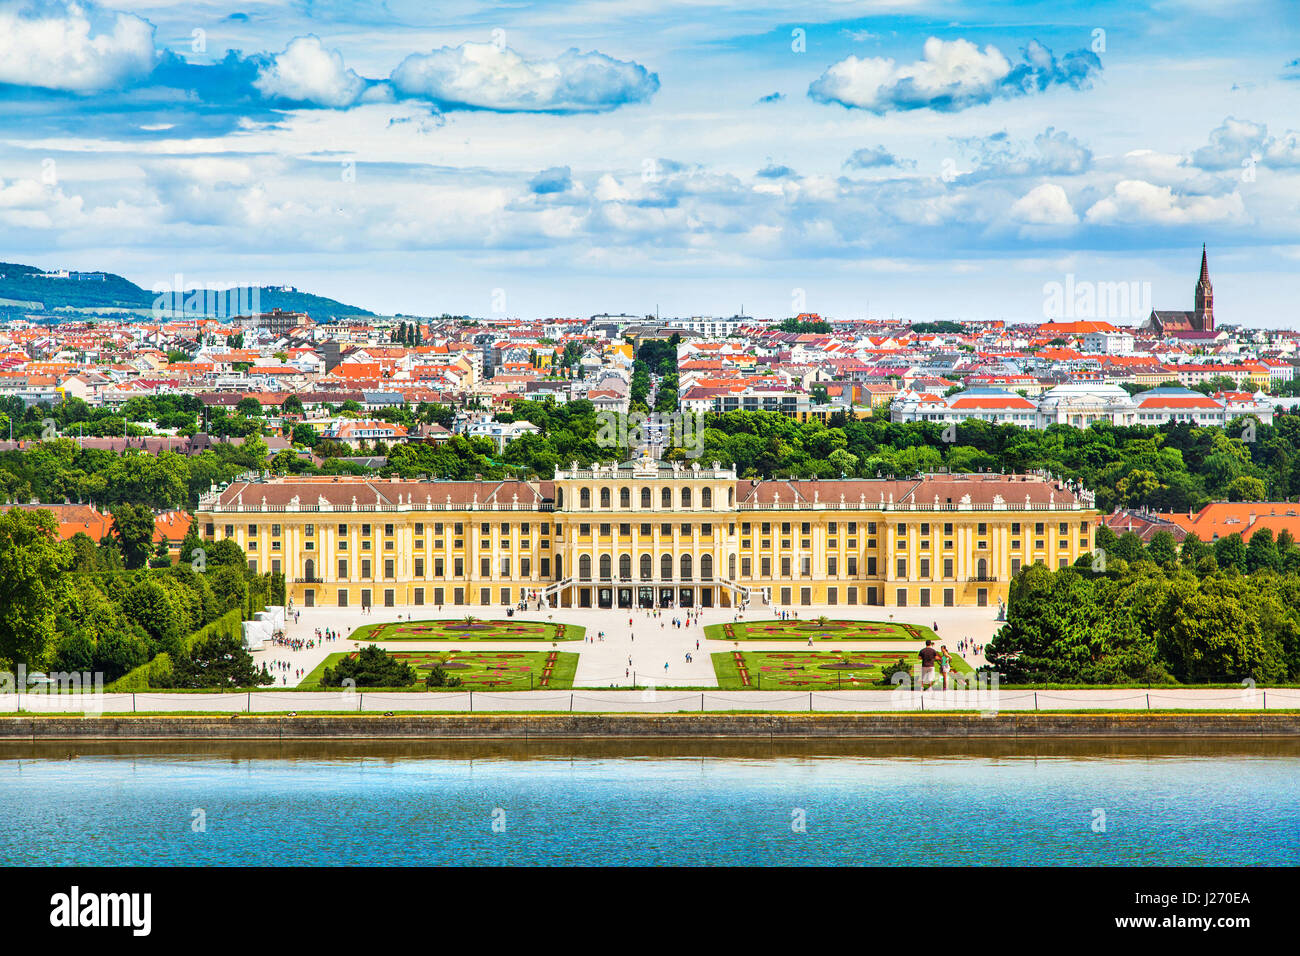 Beautiful view of famous Schonbrunn Palace with Great Parterre garden in Vienna, Austria - Stock Image